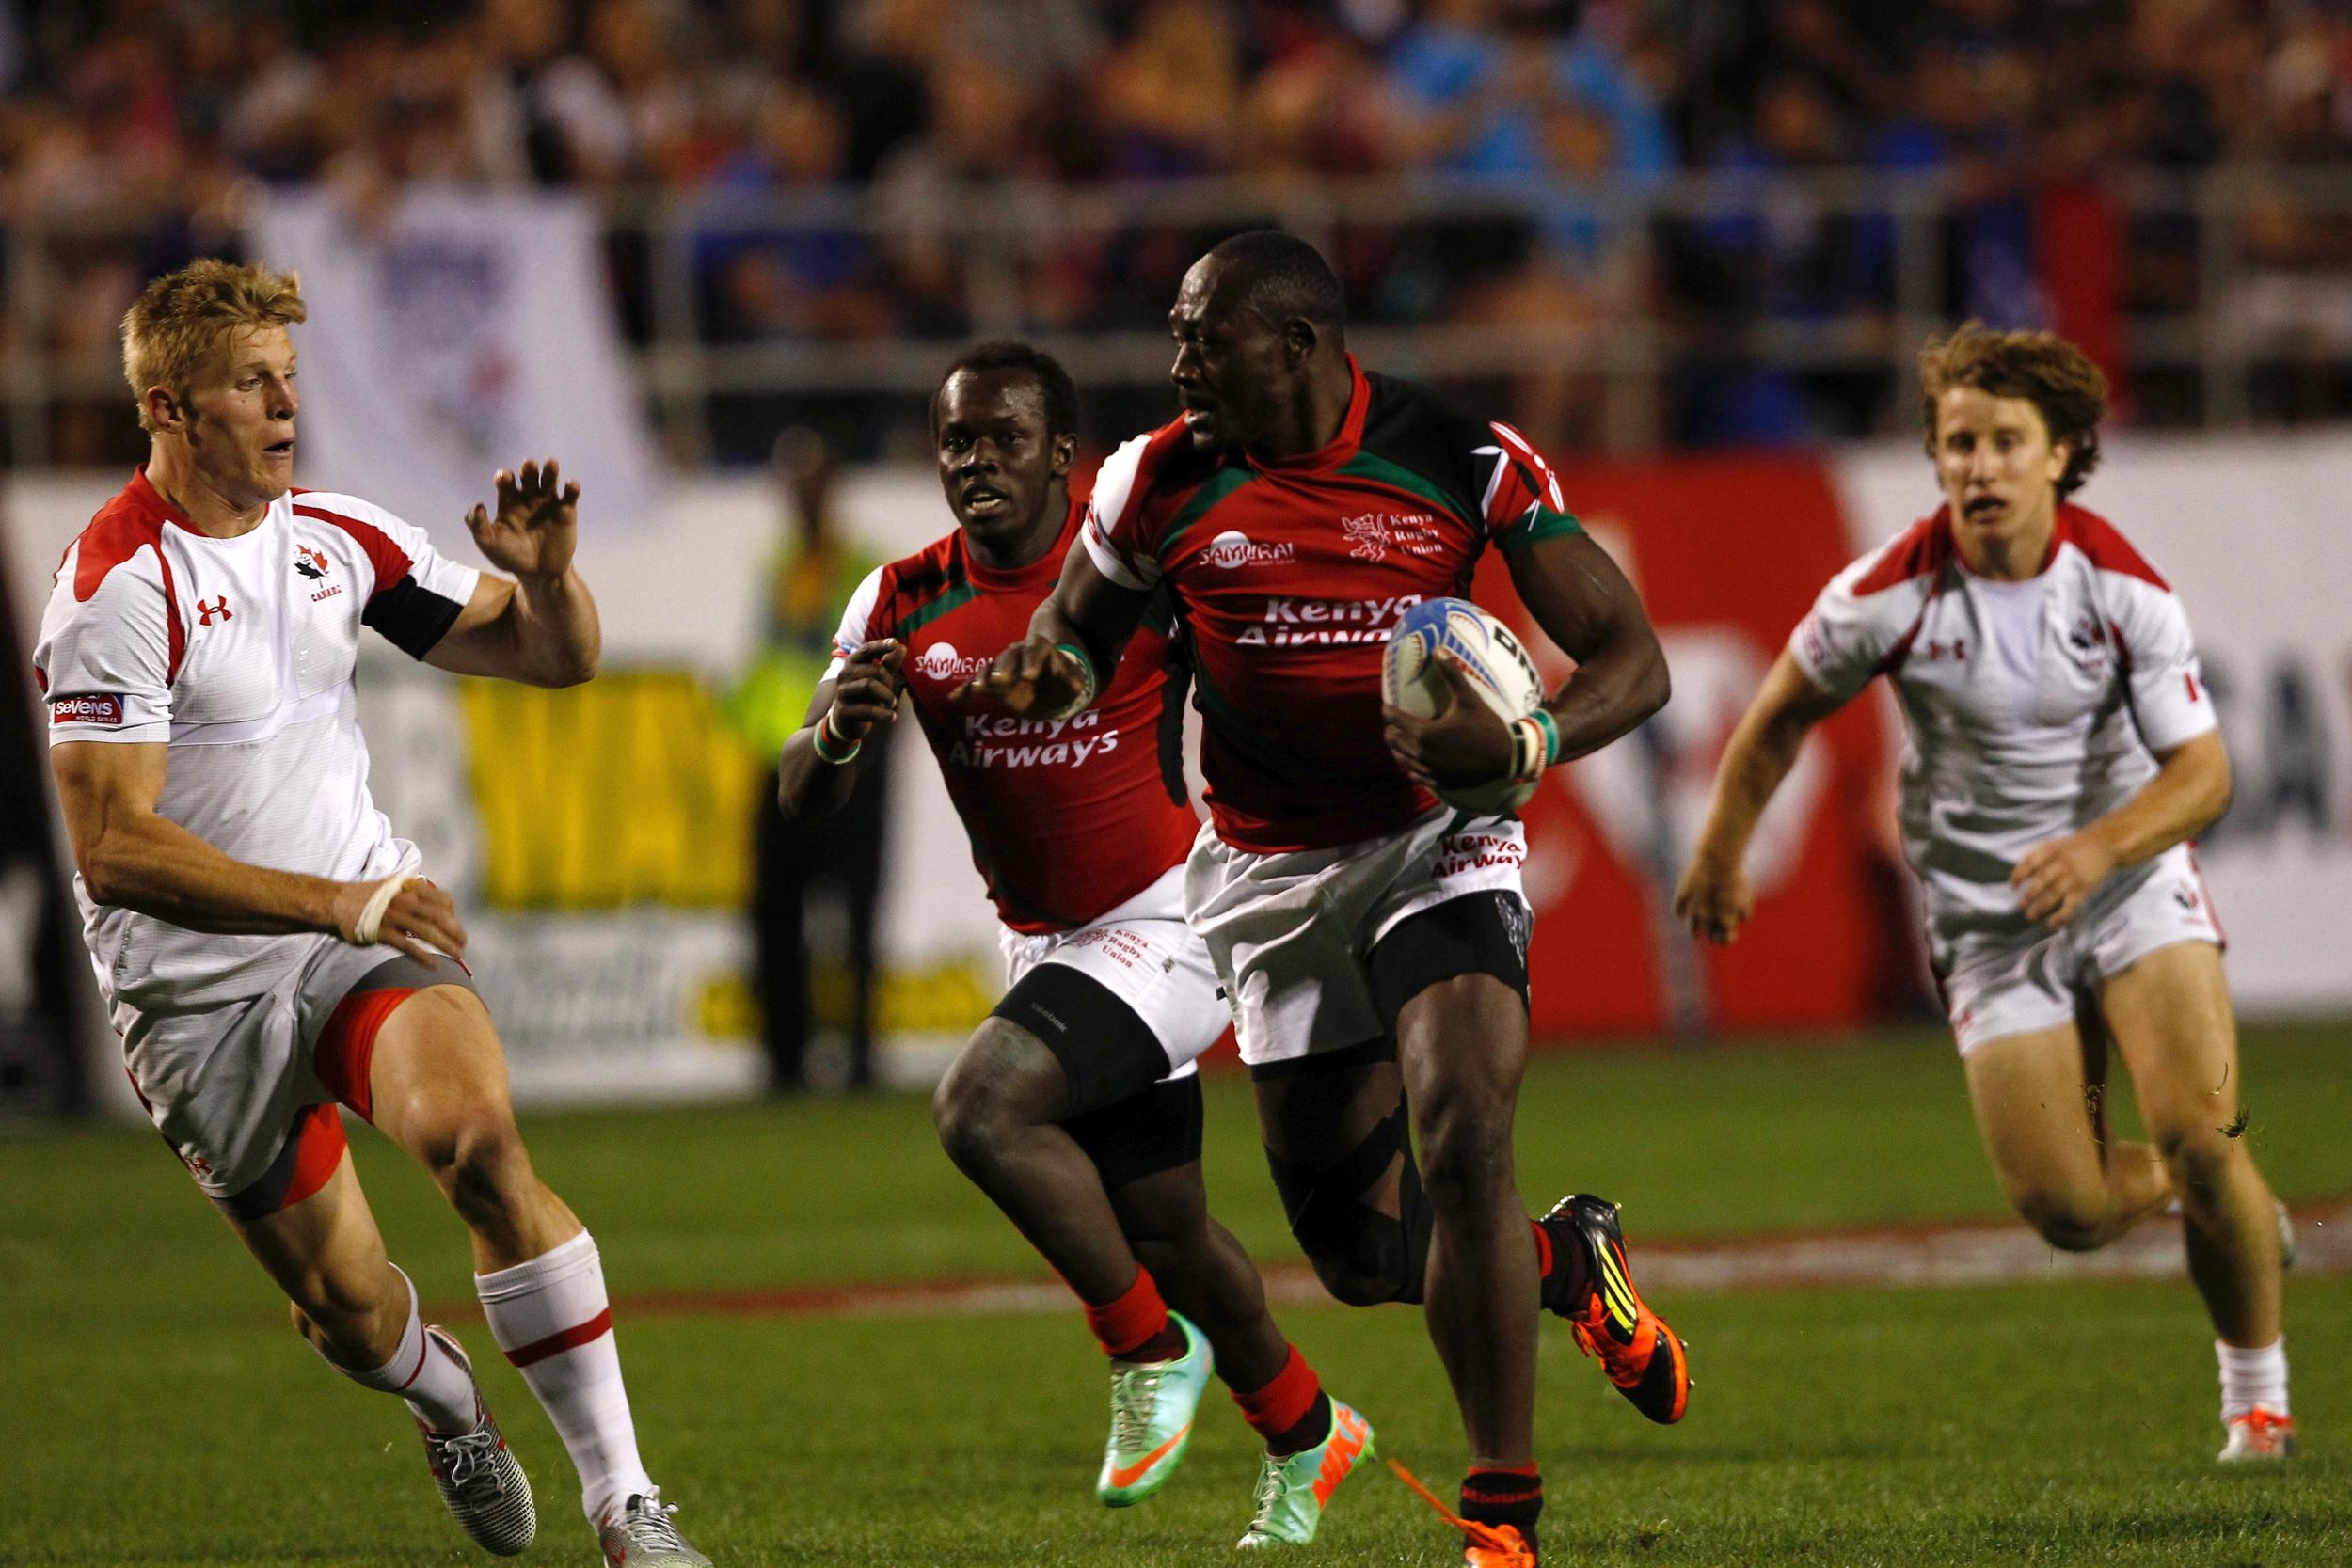 Kenya's narrow 22-21 victory over Canada could prove vital in a tight Pool C ©World Rugby